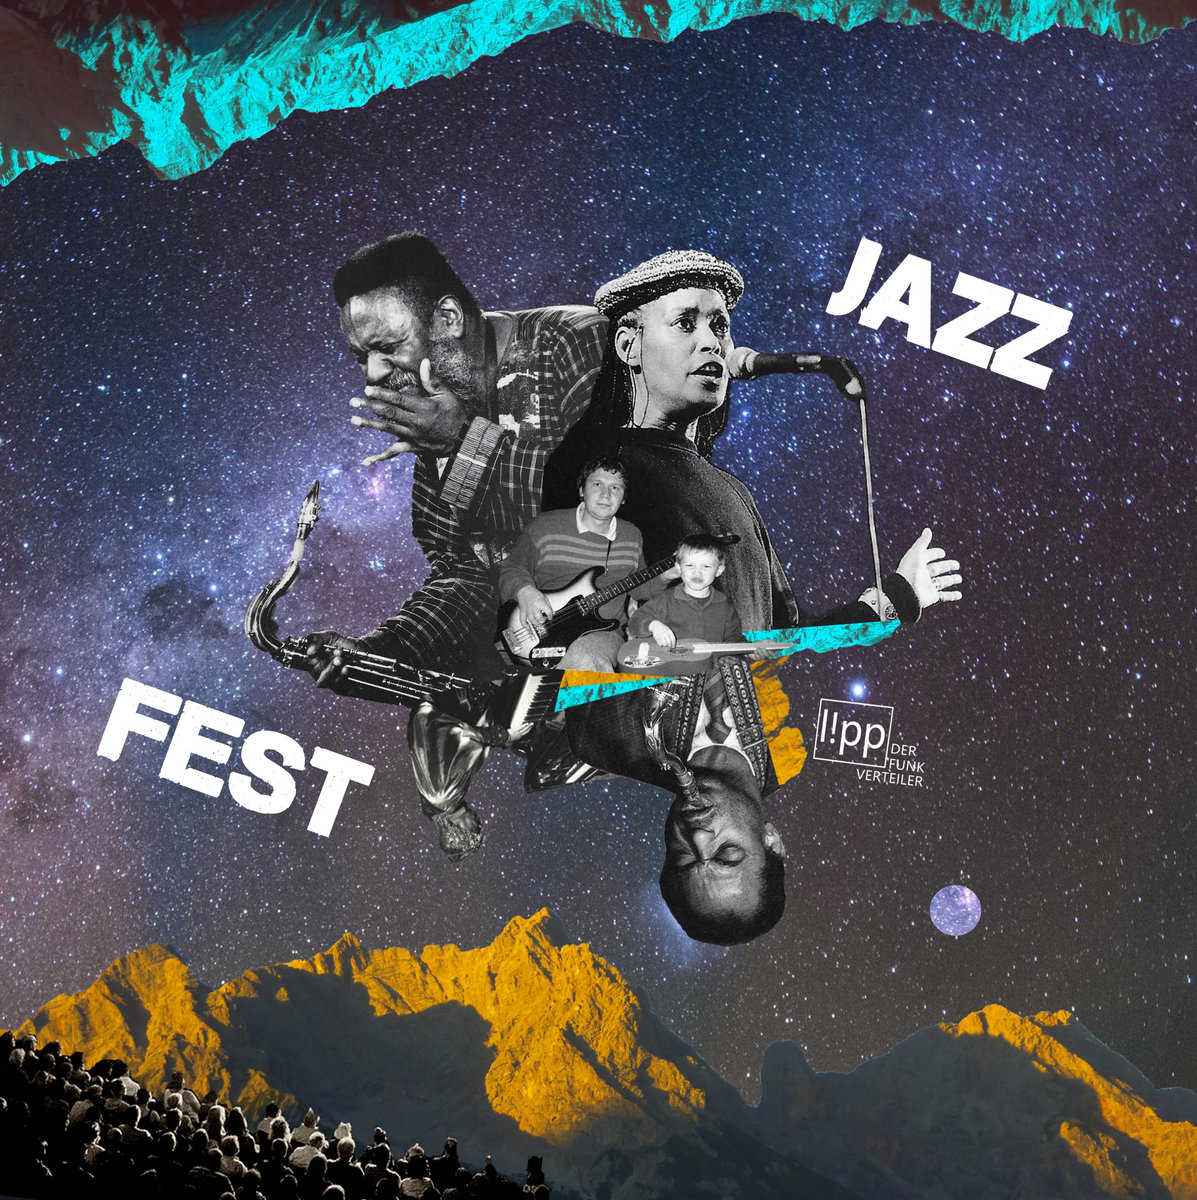 Lipp der Funkverteiler's Hommage to a Life-changing Jazz Fest (Album Stream)